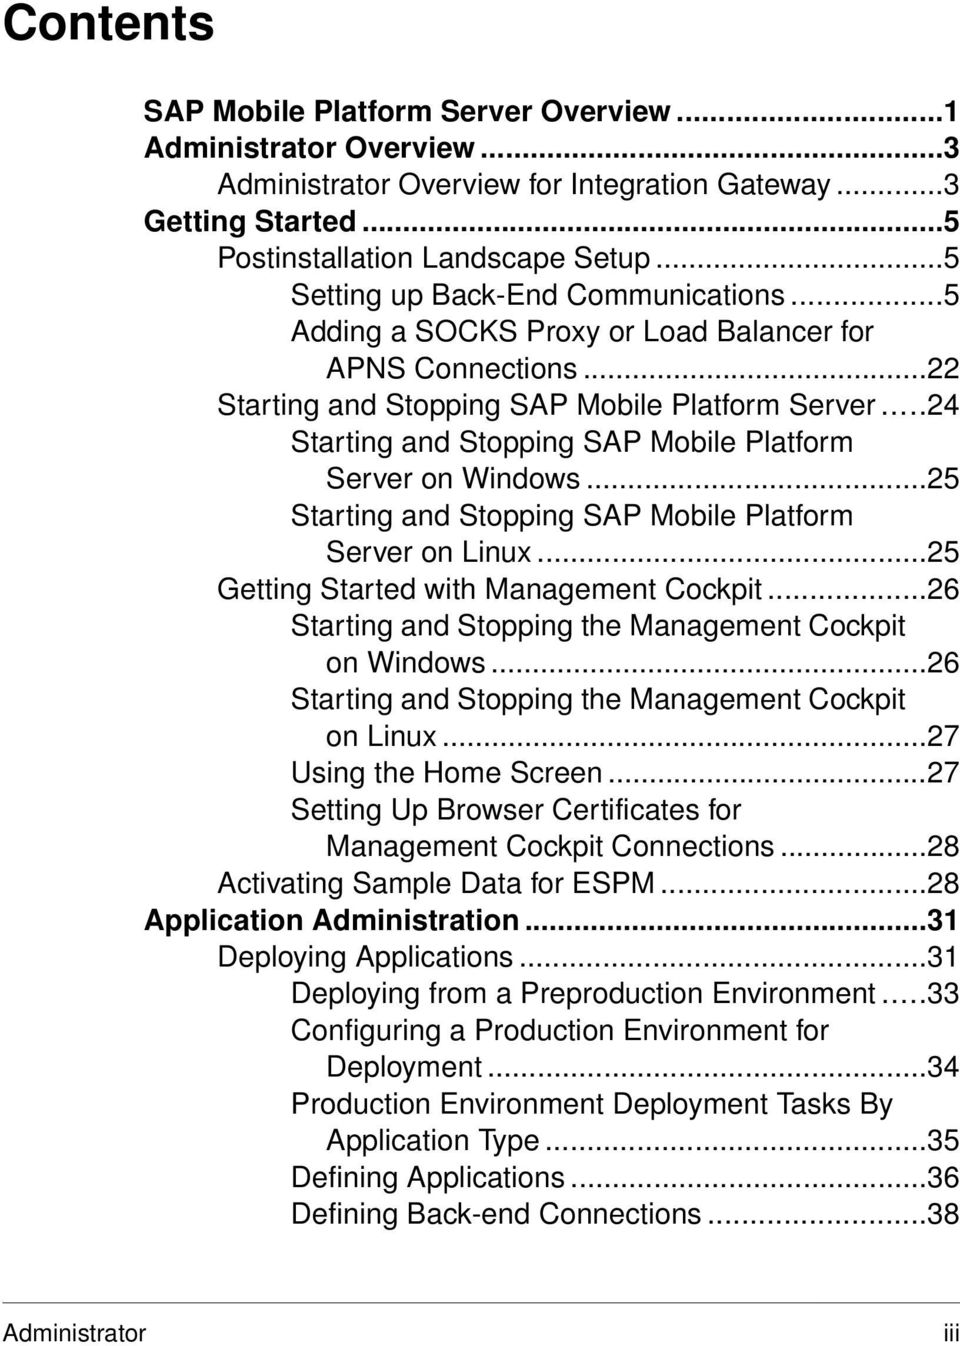 ..24 Starting and Stopping SAP Mobile Platform Server on Windows...25 Starting and Stopping SAP Mobile Platform Server on Linux...25 Getting Started with Management Cockpit.